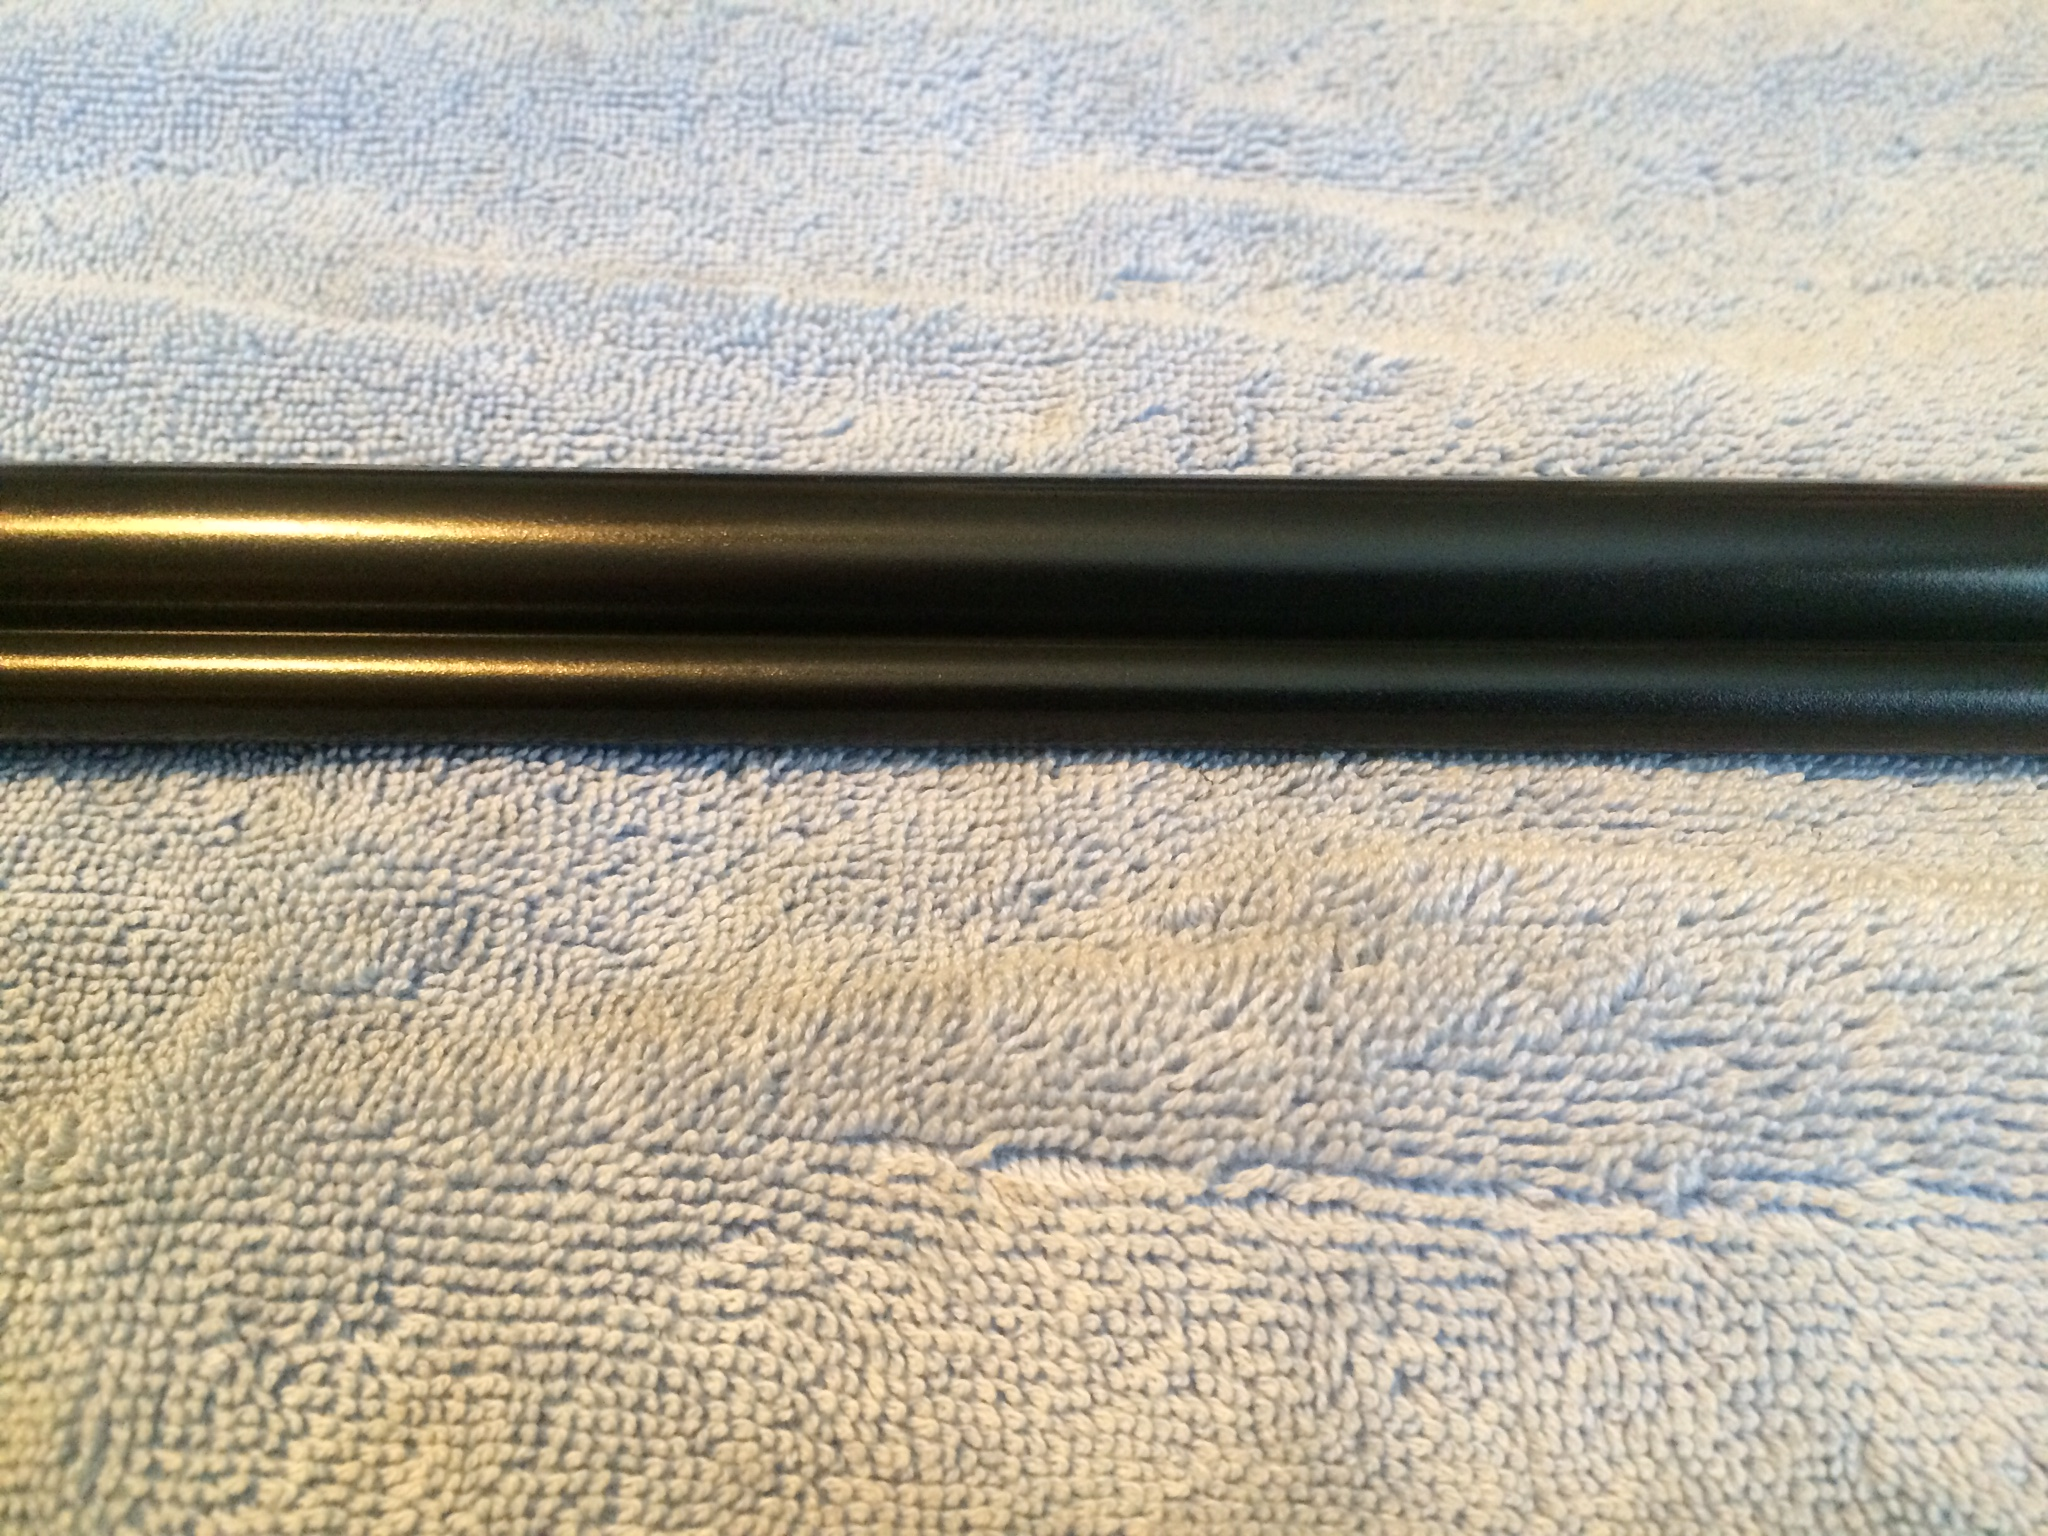 Painting Rifles - How To-image.jpeg